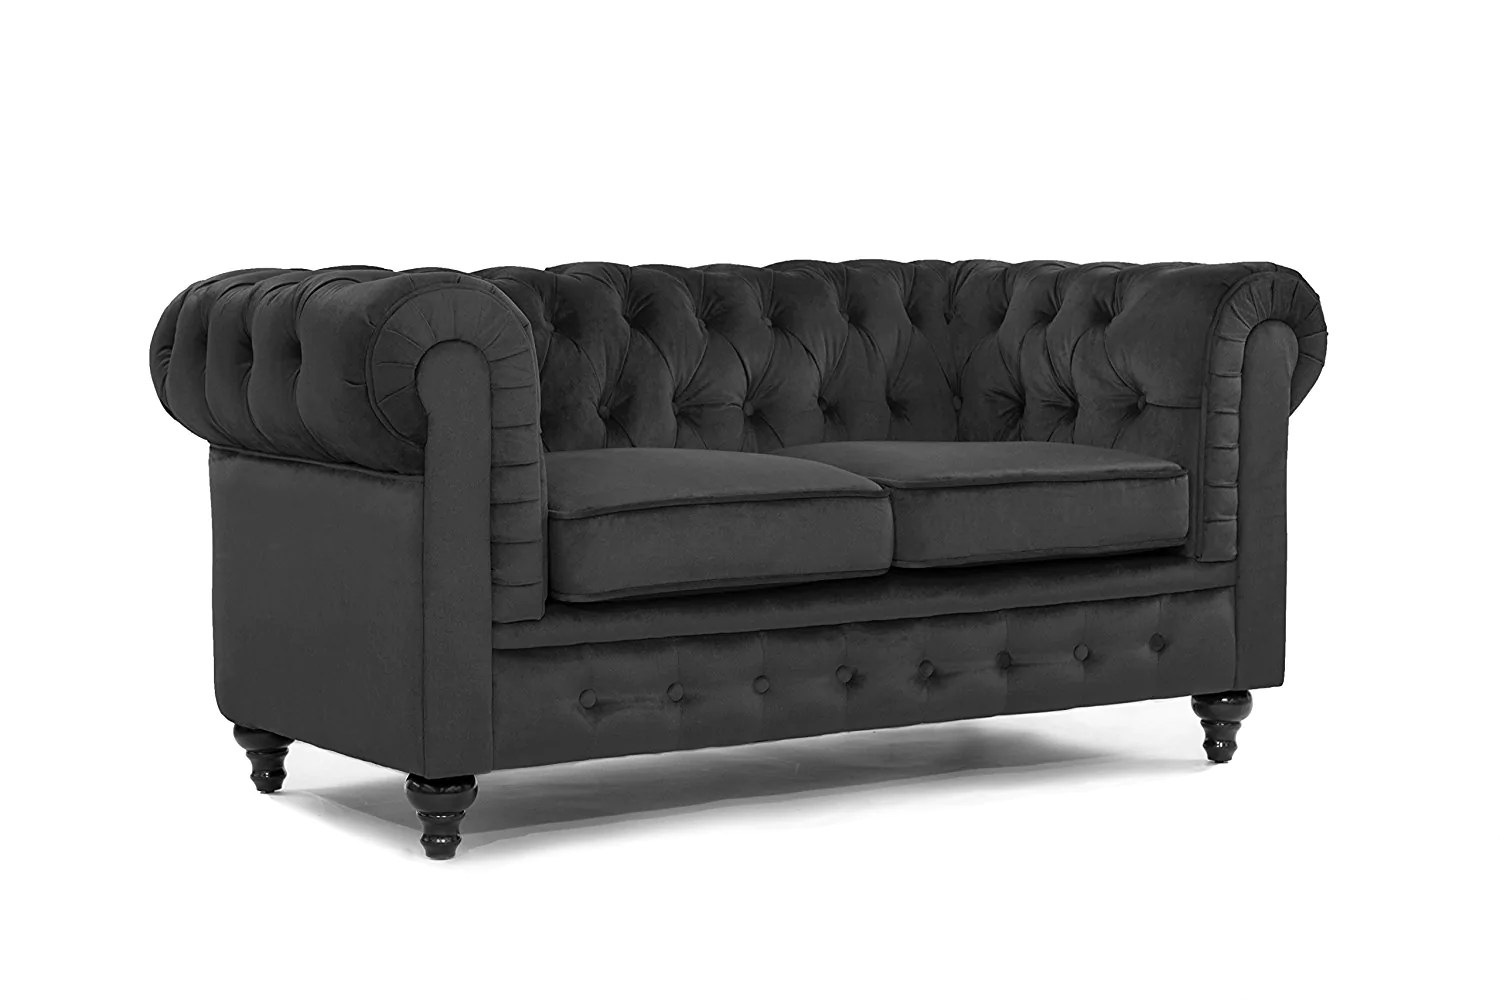 Canapé Chesterfield 2 Places Samantha Canapé Chesterfield 2 Places Velours Coloris